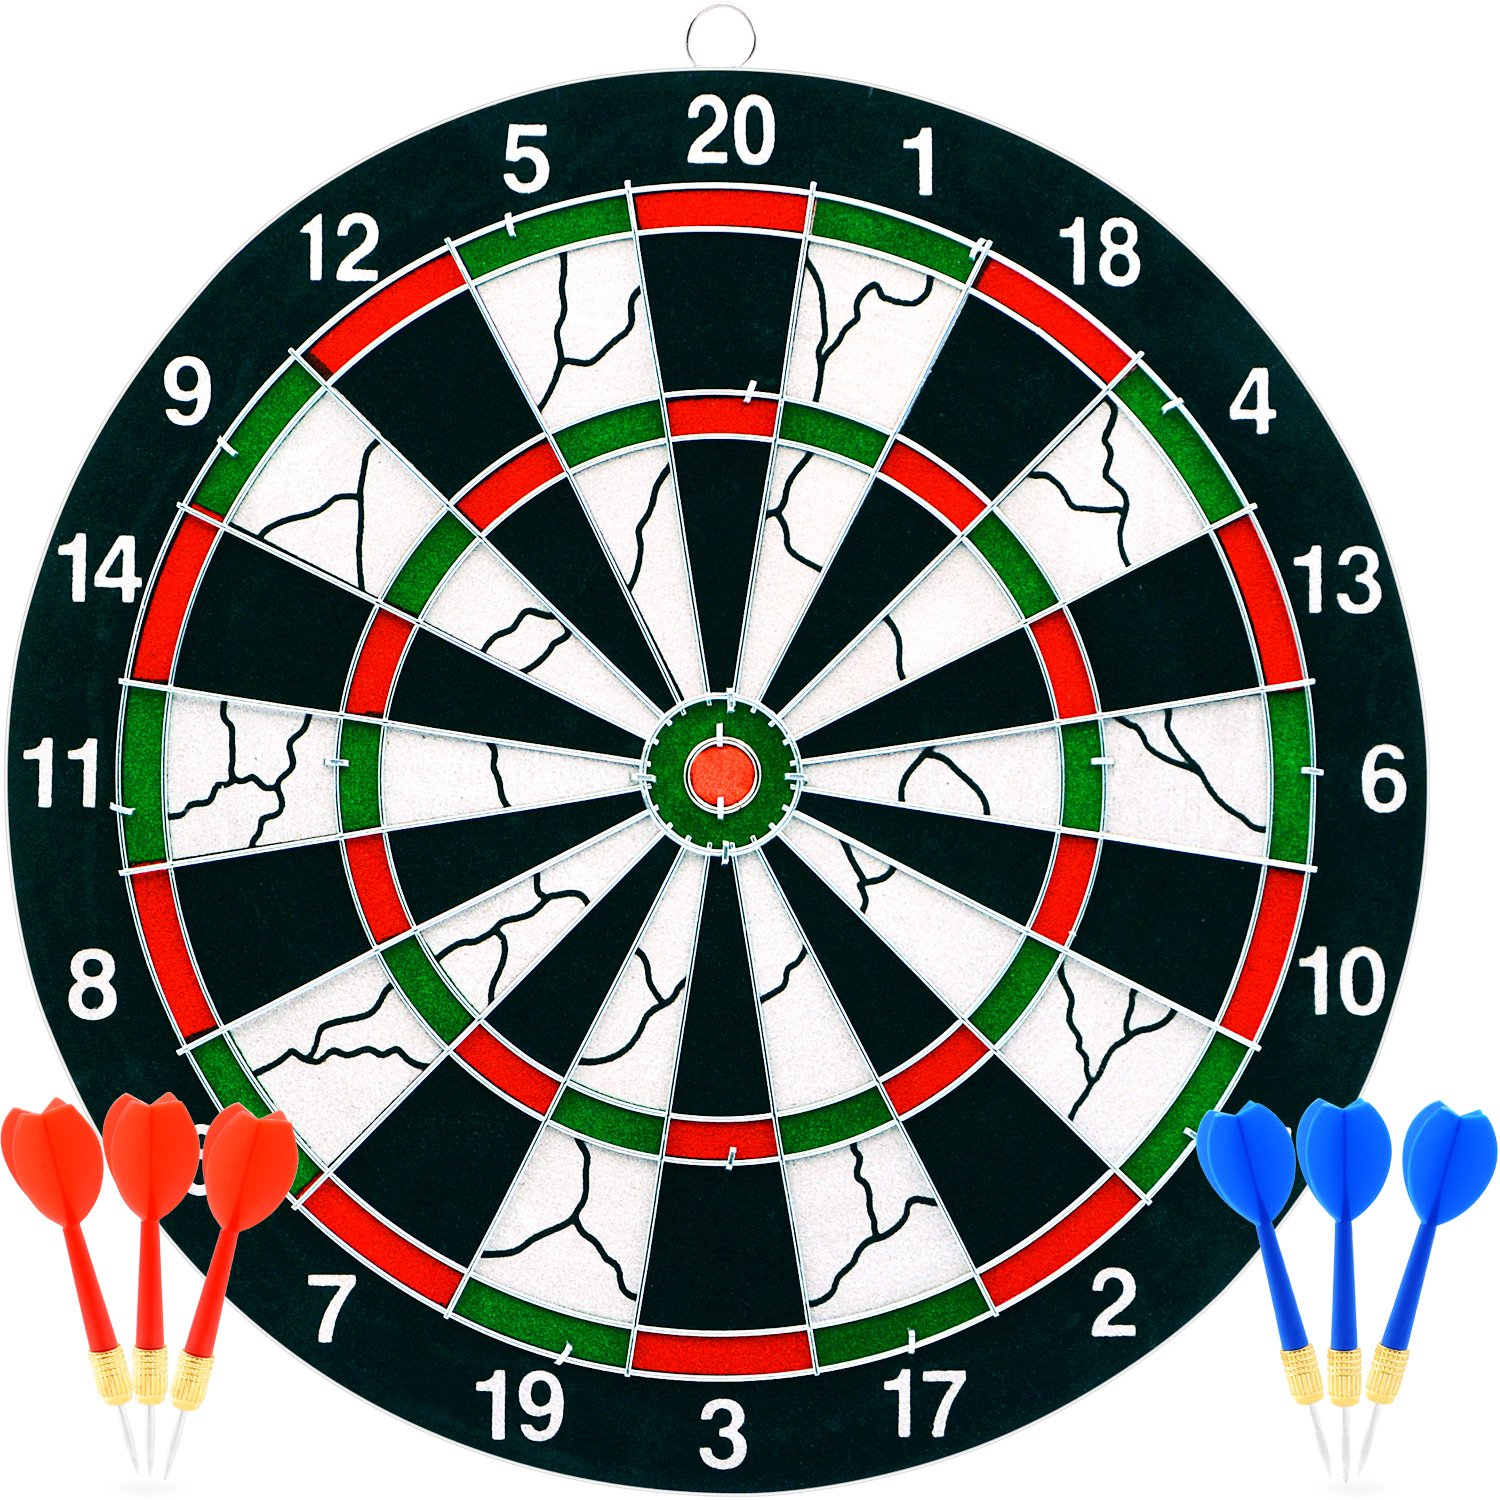 7TECH Dart Board 12 inches with 1 Double Sided Score Game Set and 6 Darts